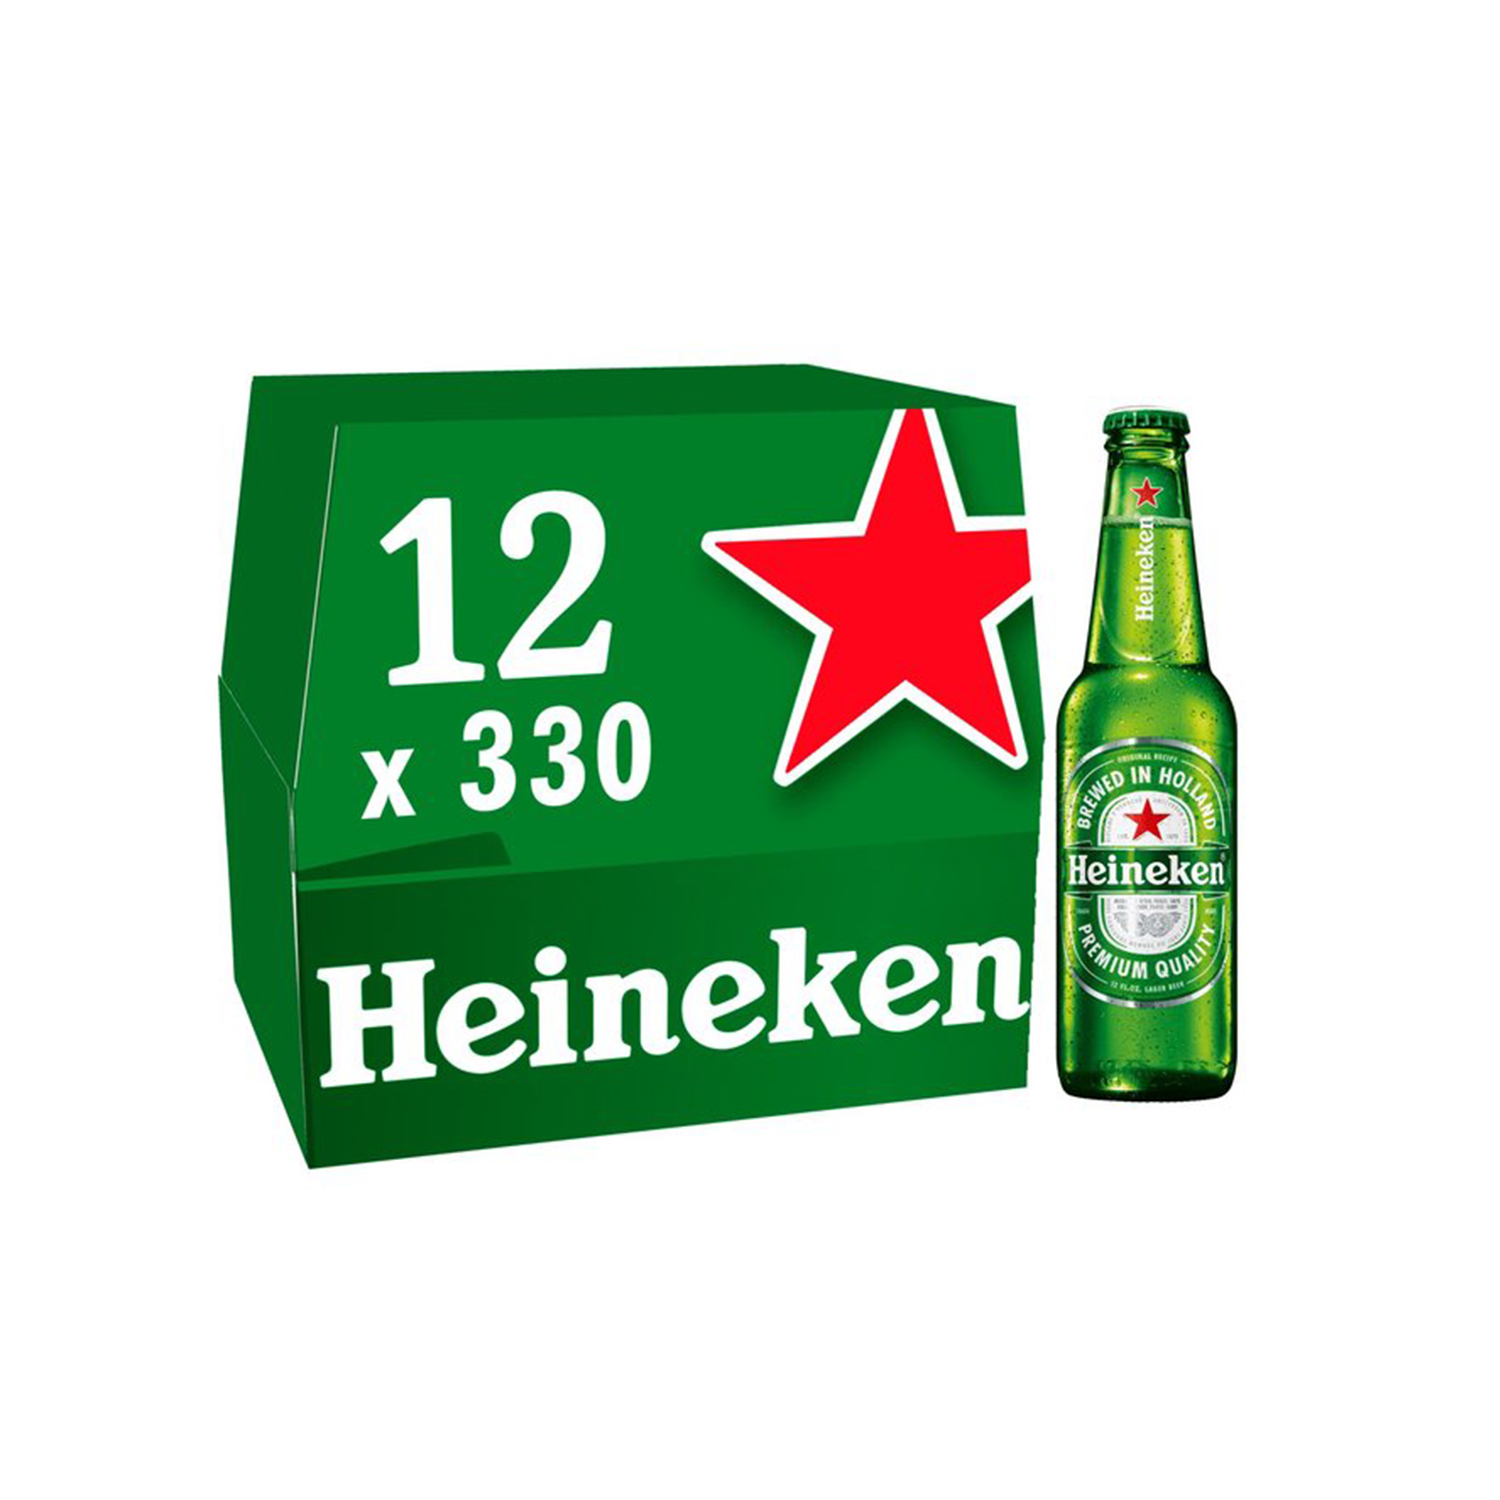 Heineken Beer RWC 12 x 330ml